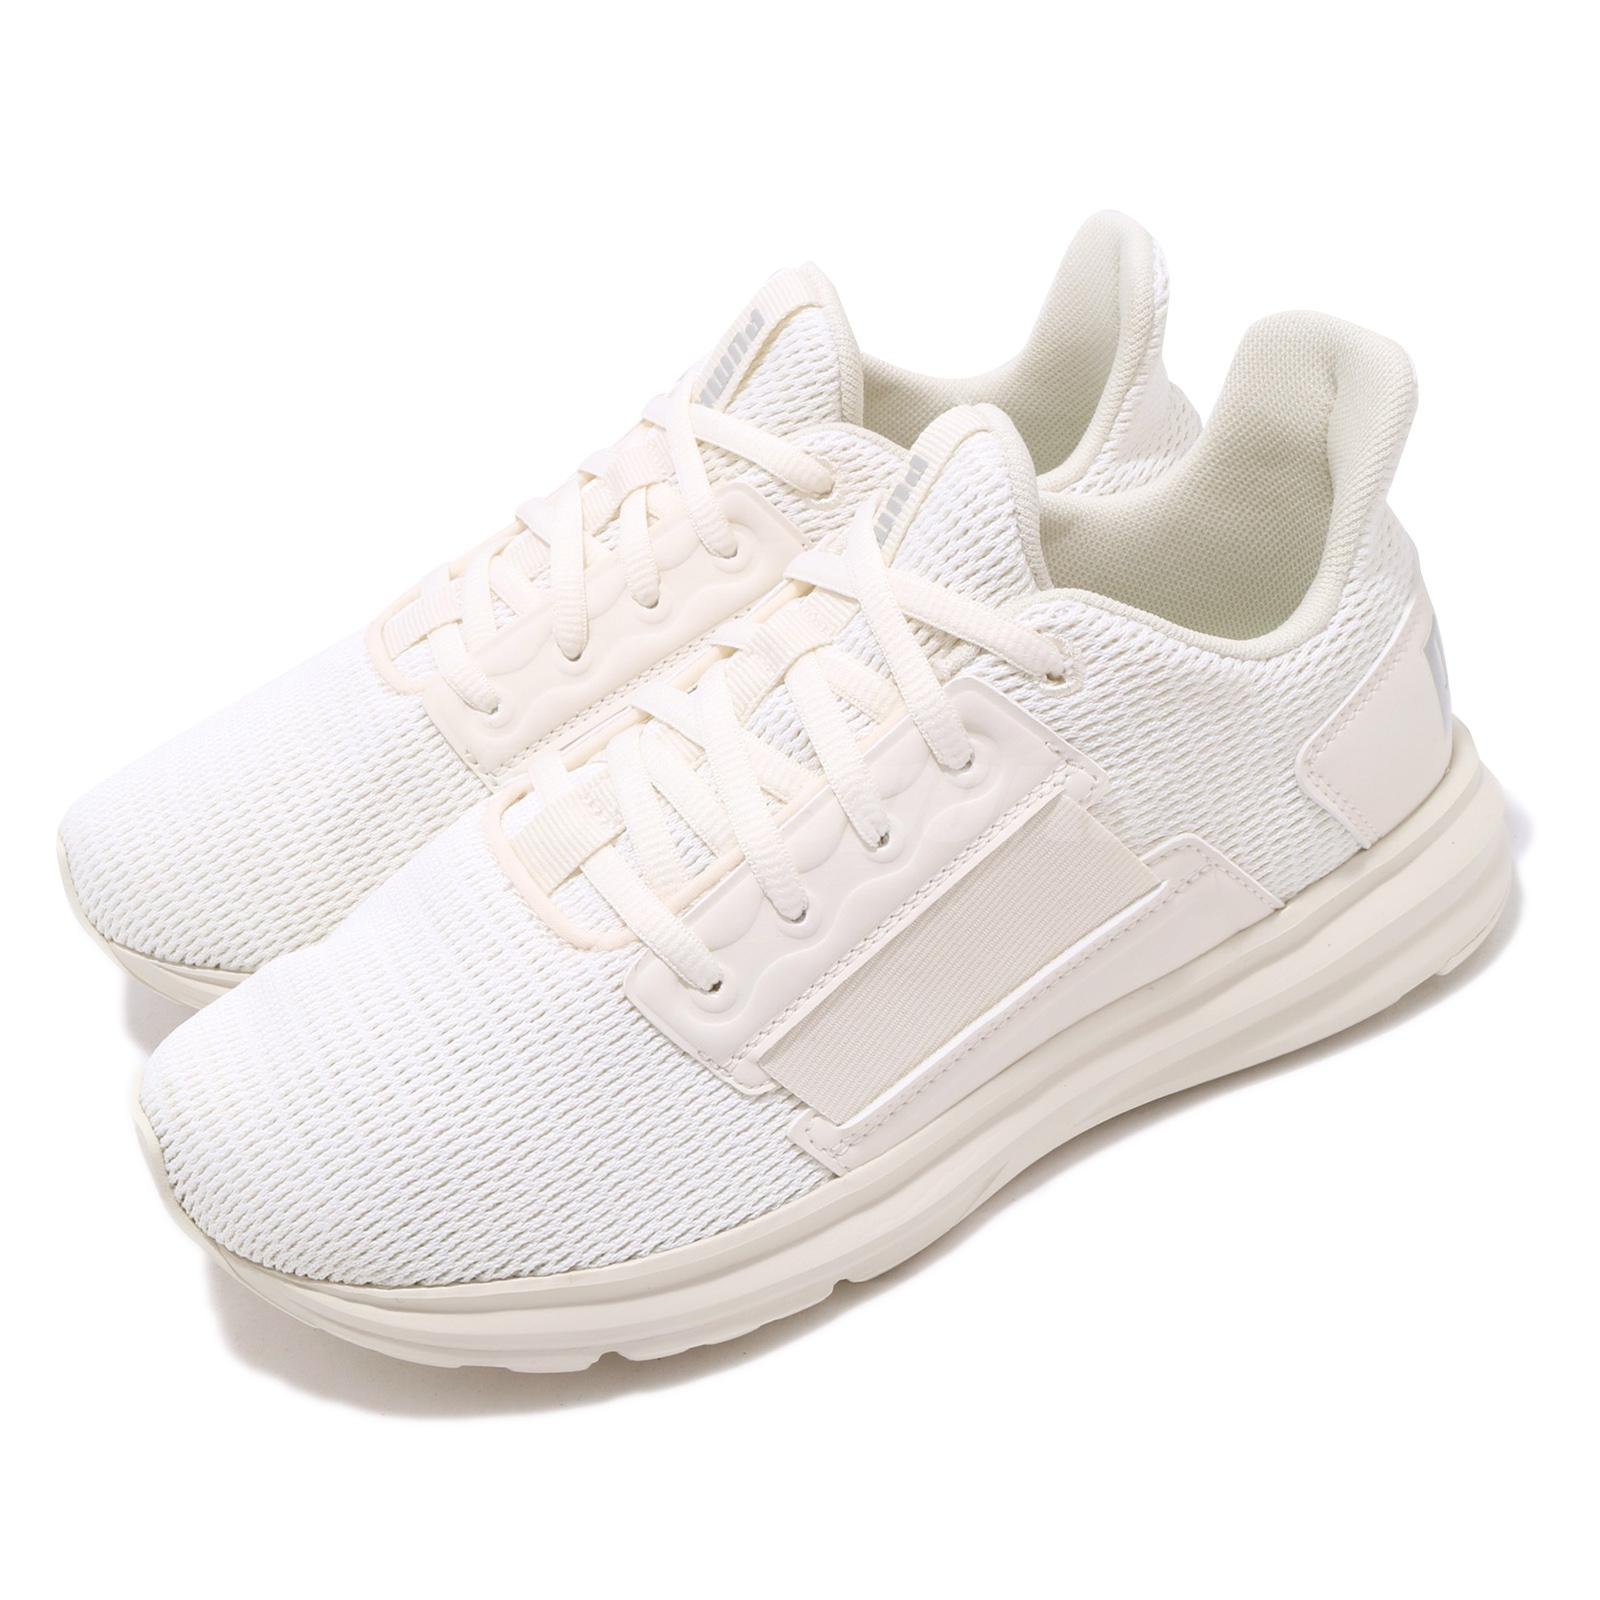 Details about Puma Enzo Street Heather Wns Whisper White Silver Womens Running Shoes 192350 02